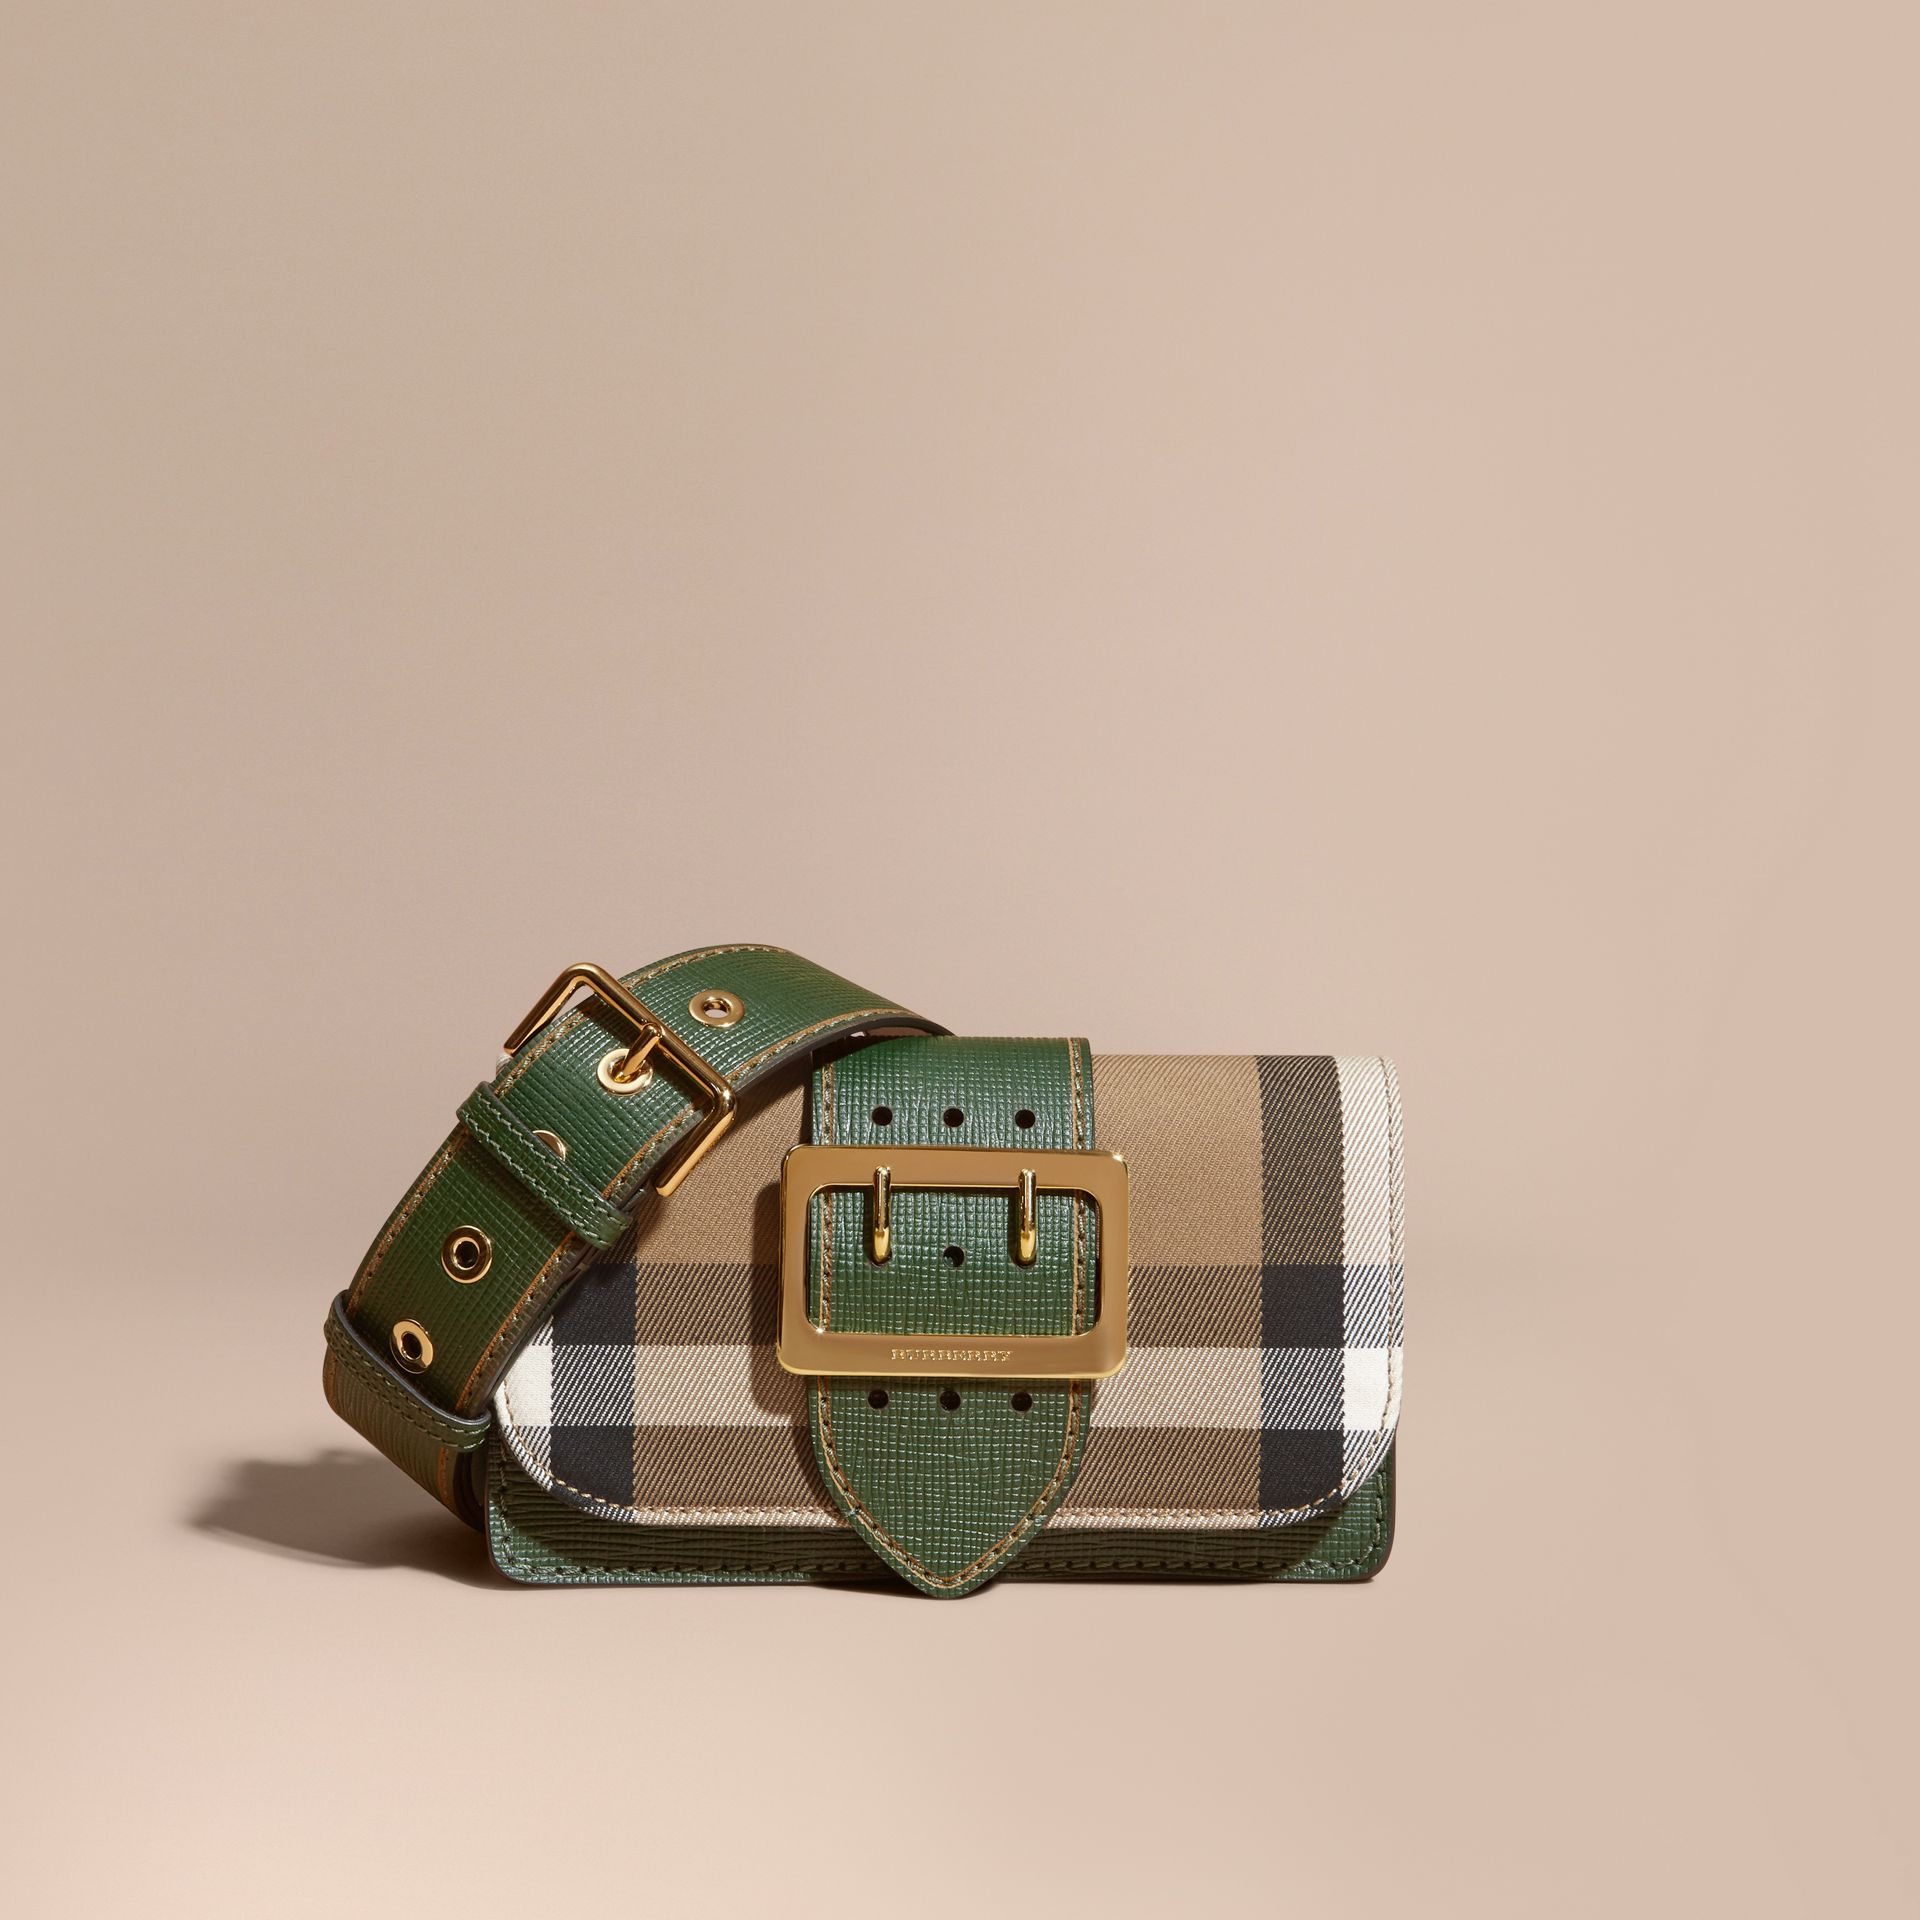 The Small Buckle Bag in House Check and Leather in Kelly Green/kelly Green - Women | Burberry Canada - gallery image 0